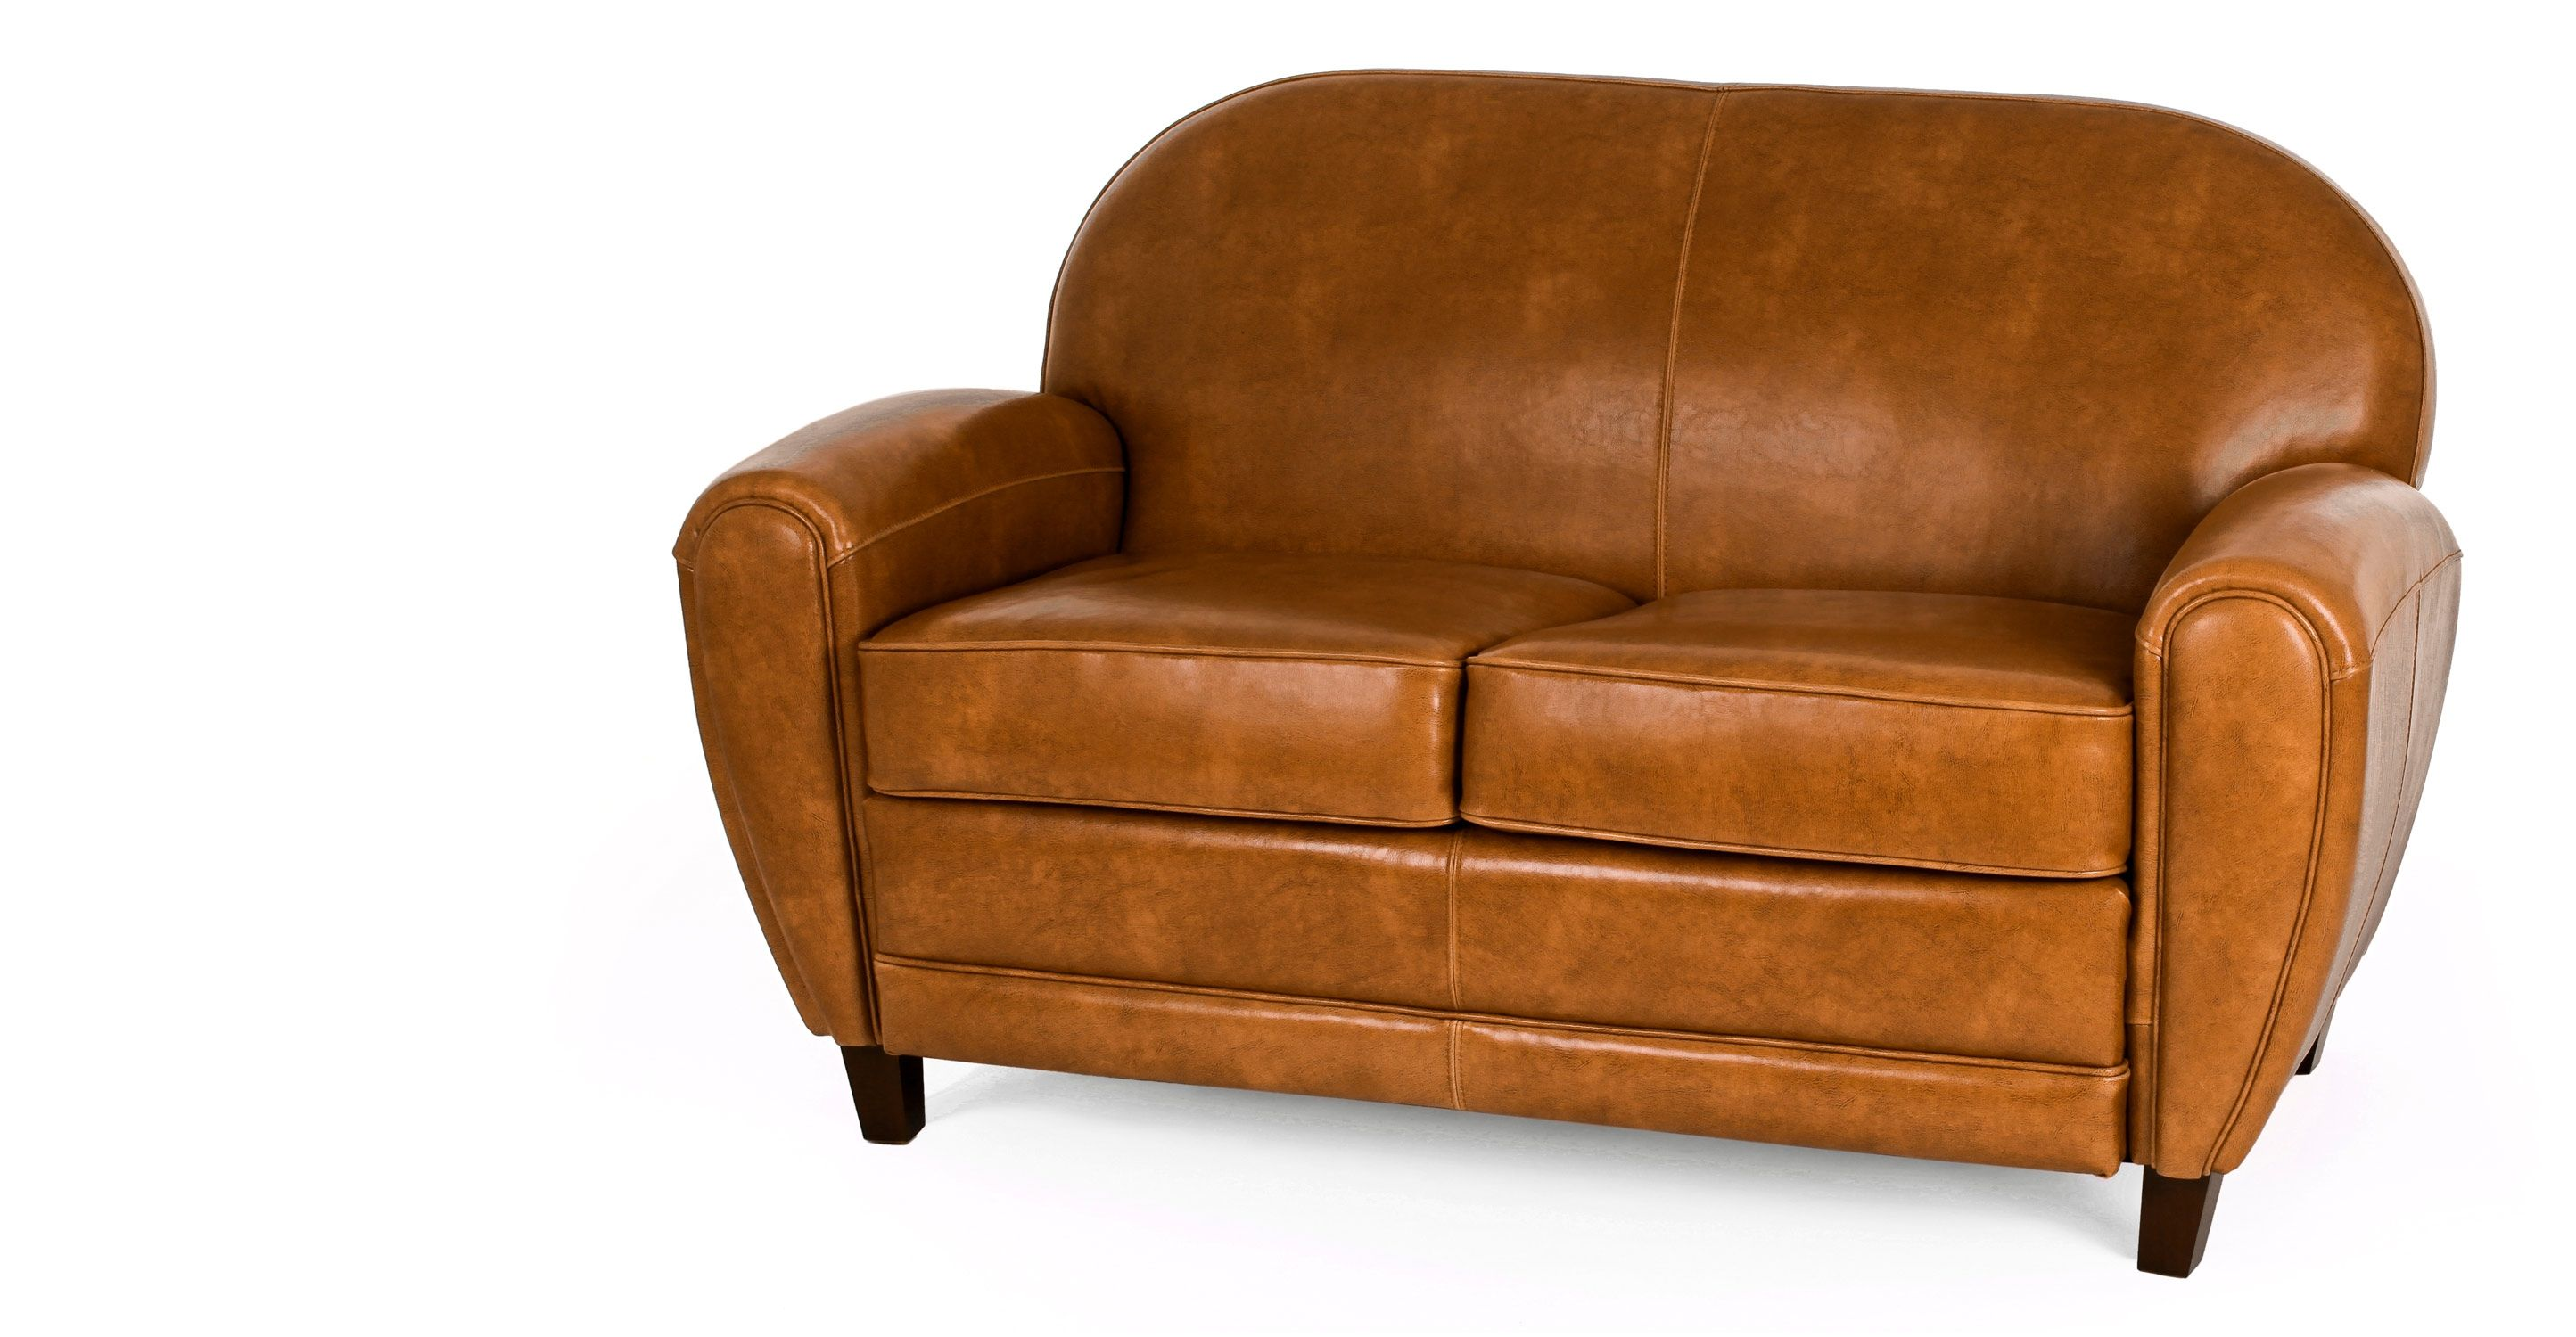 one and half seater sofa bed living room design jazz club 2 cognac kitchen